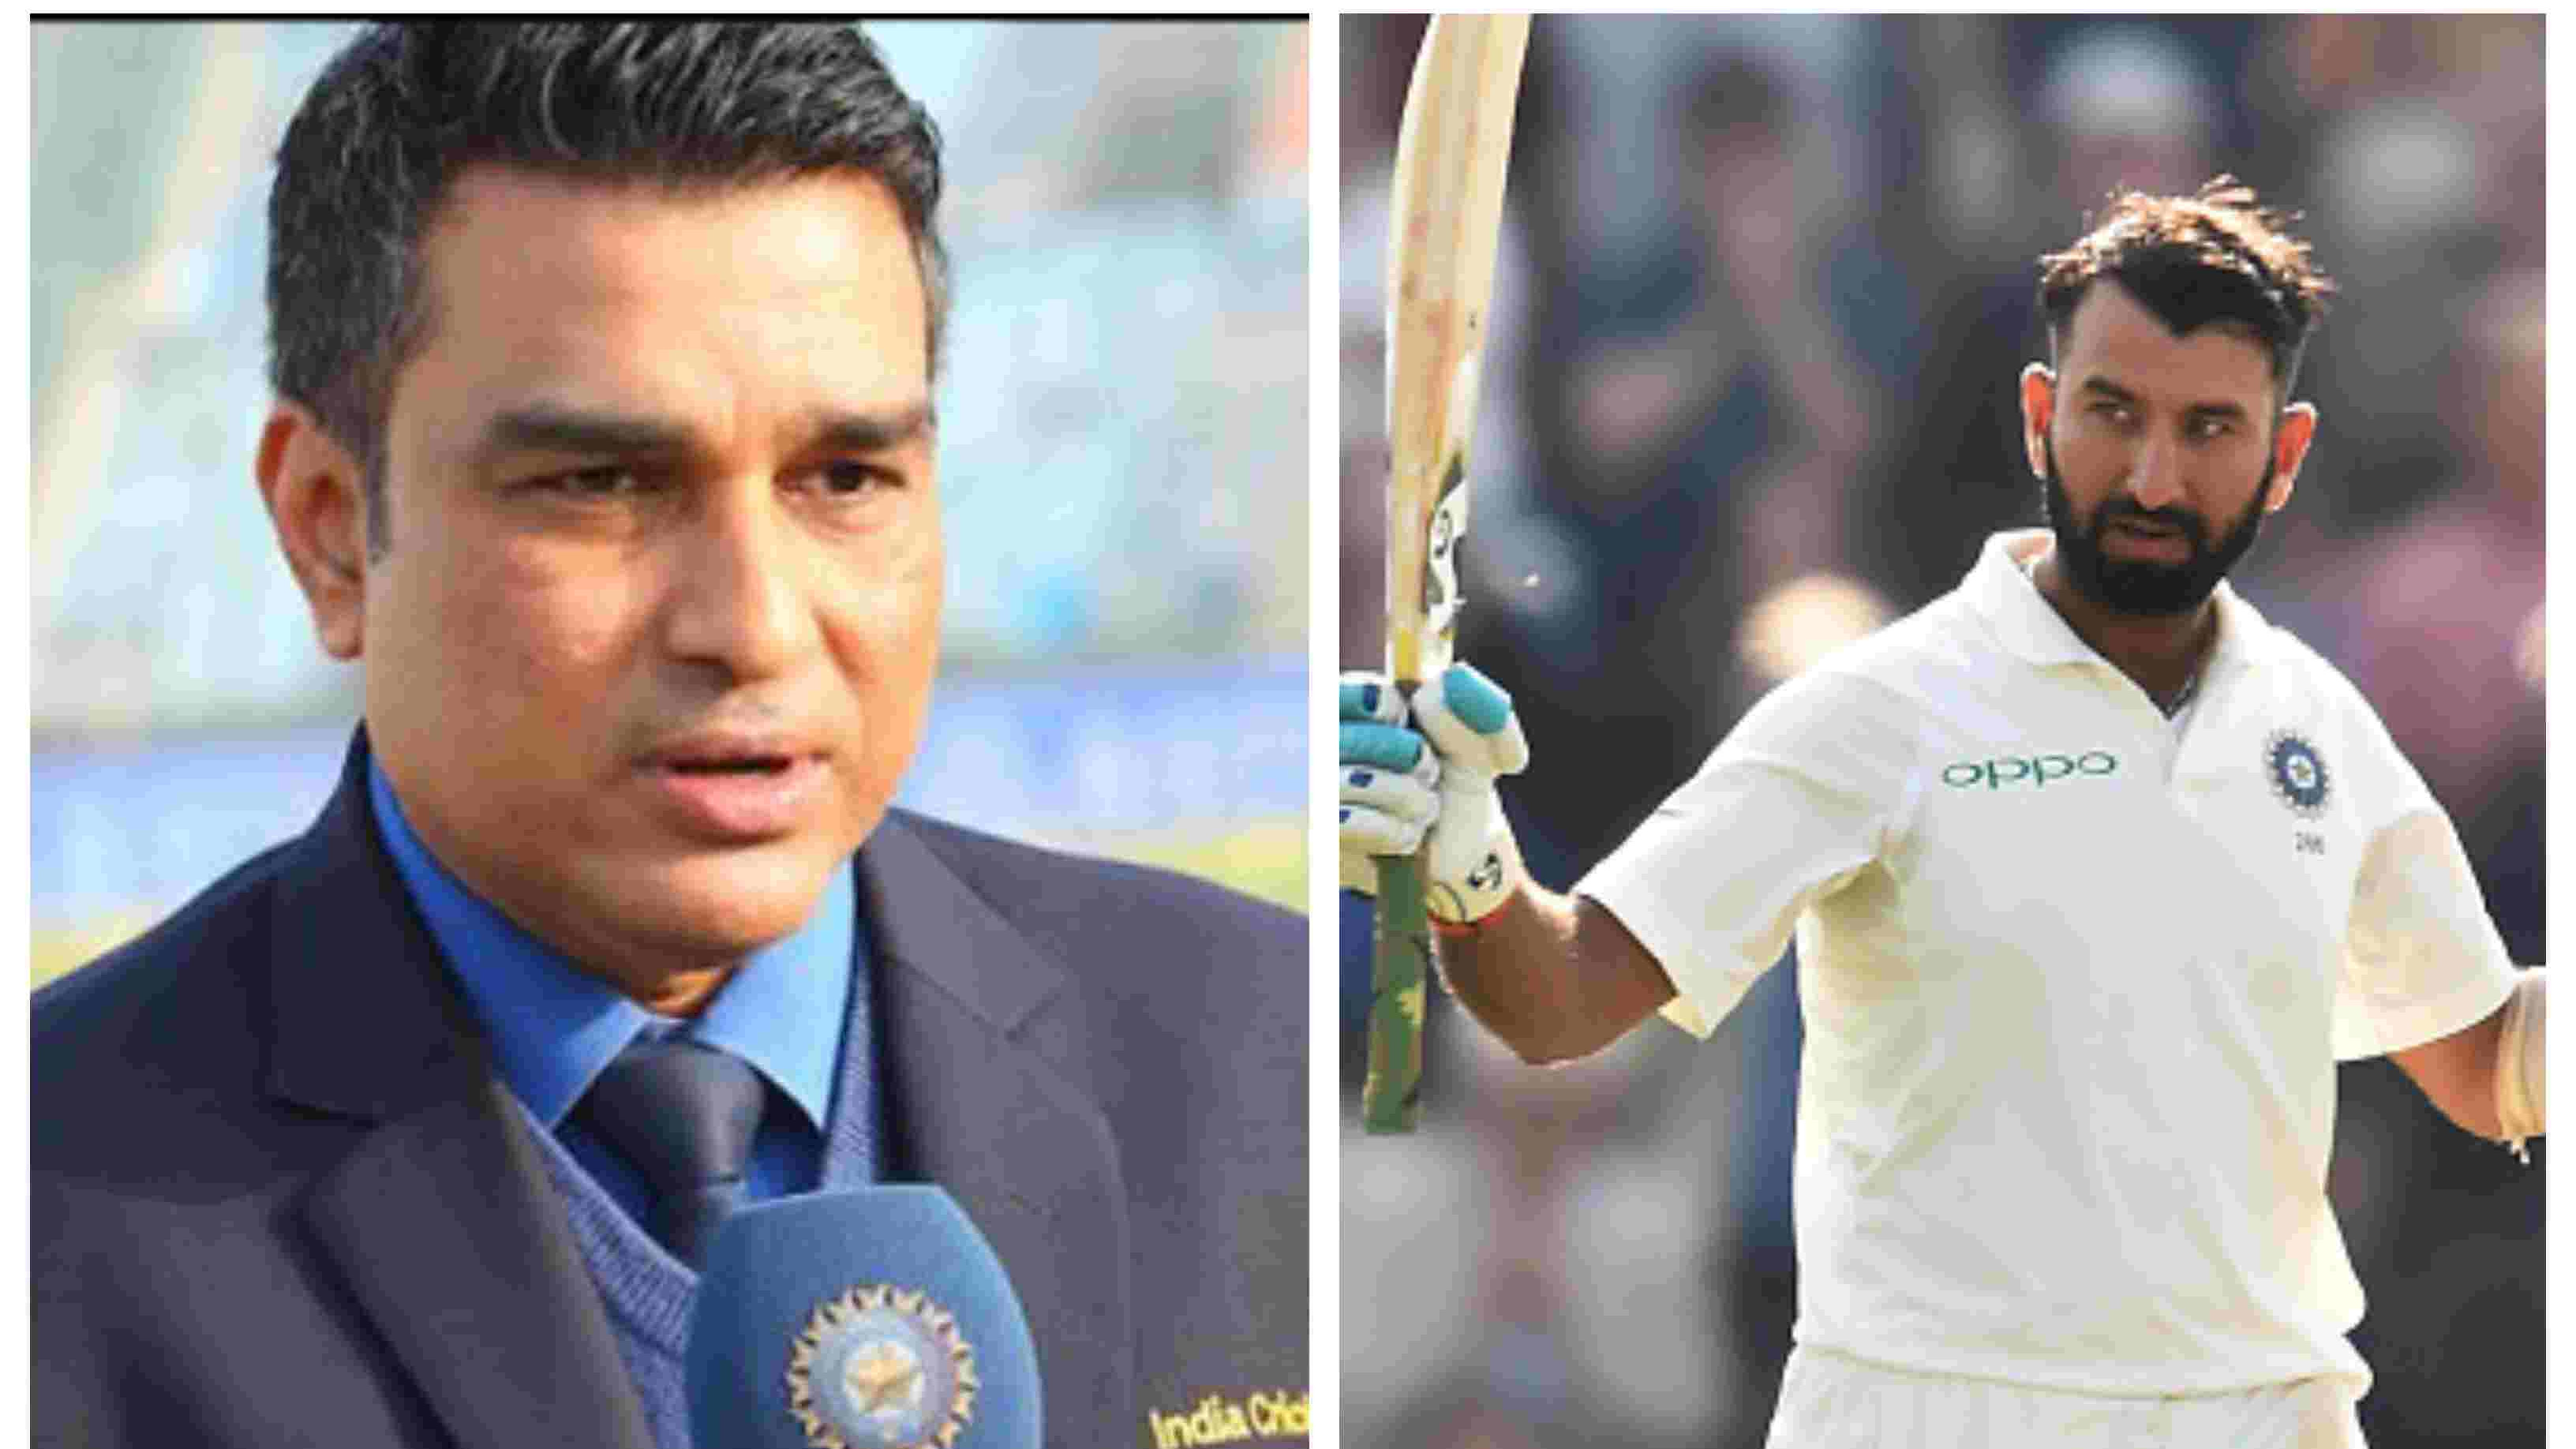 ENG v IND 2018: Sanjay Manjrekar brutally trolled by Twitterati for his remarks on Cheteshwar Pujara's talent